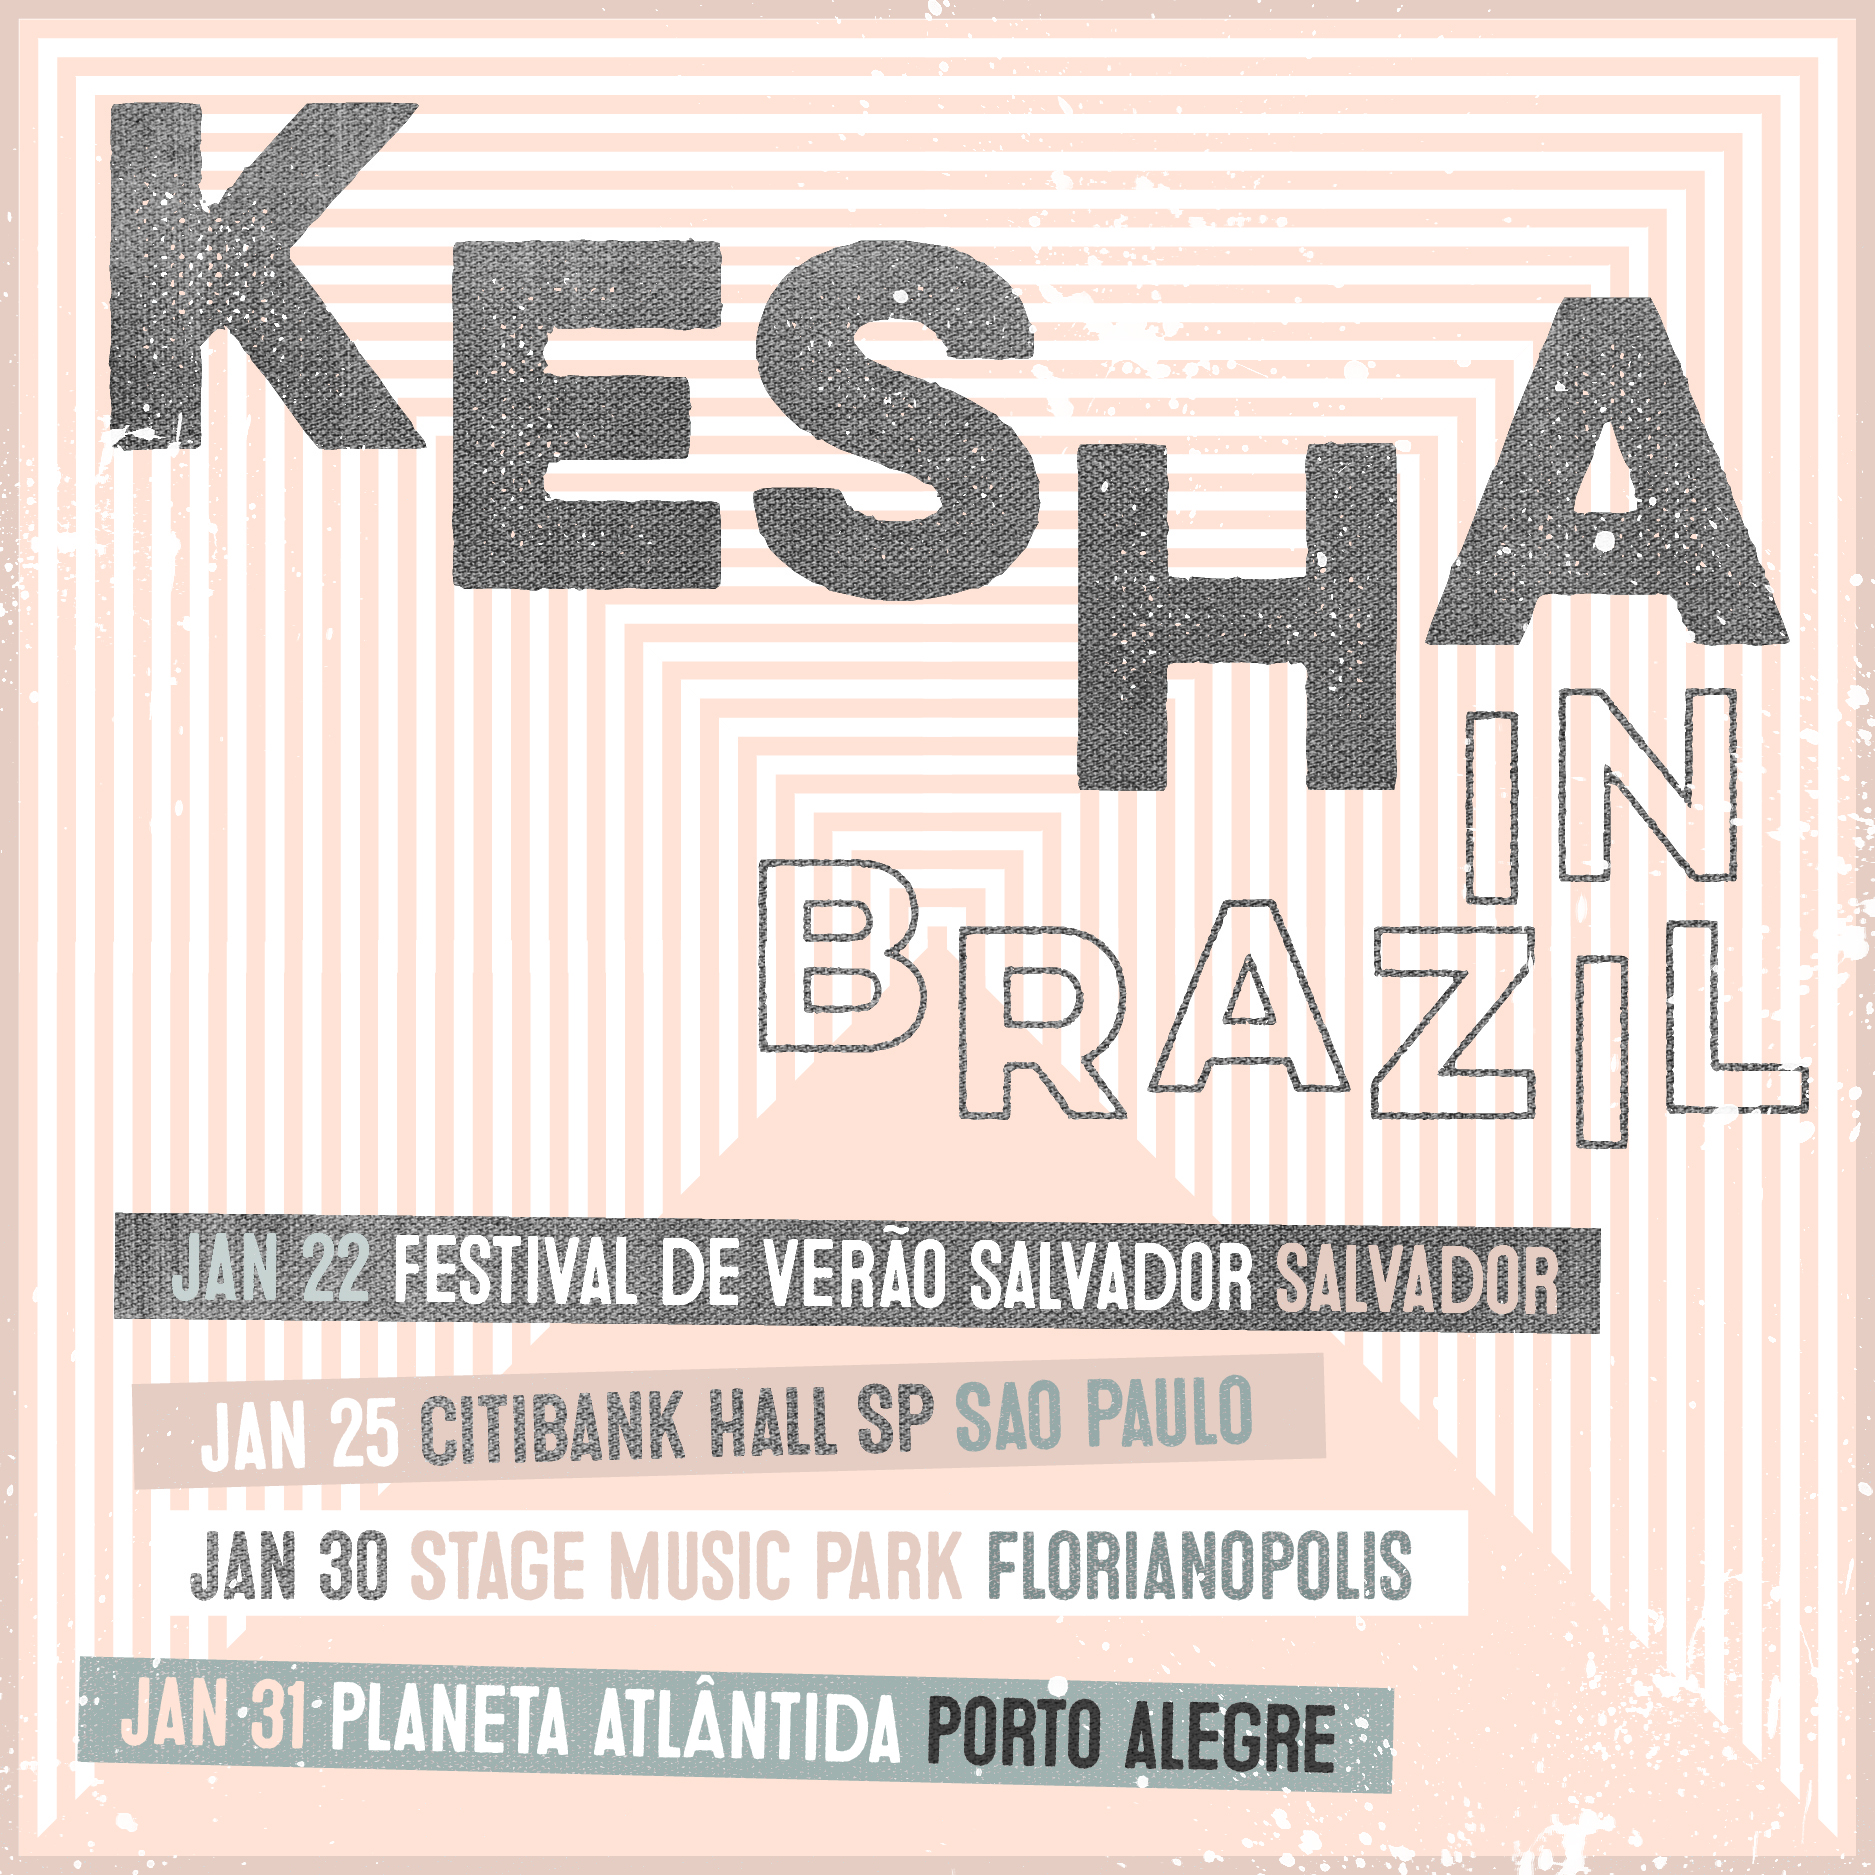 kesha-brazil-tour-01 copy.jpg